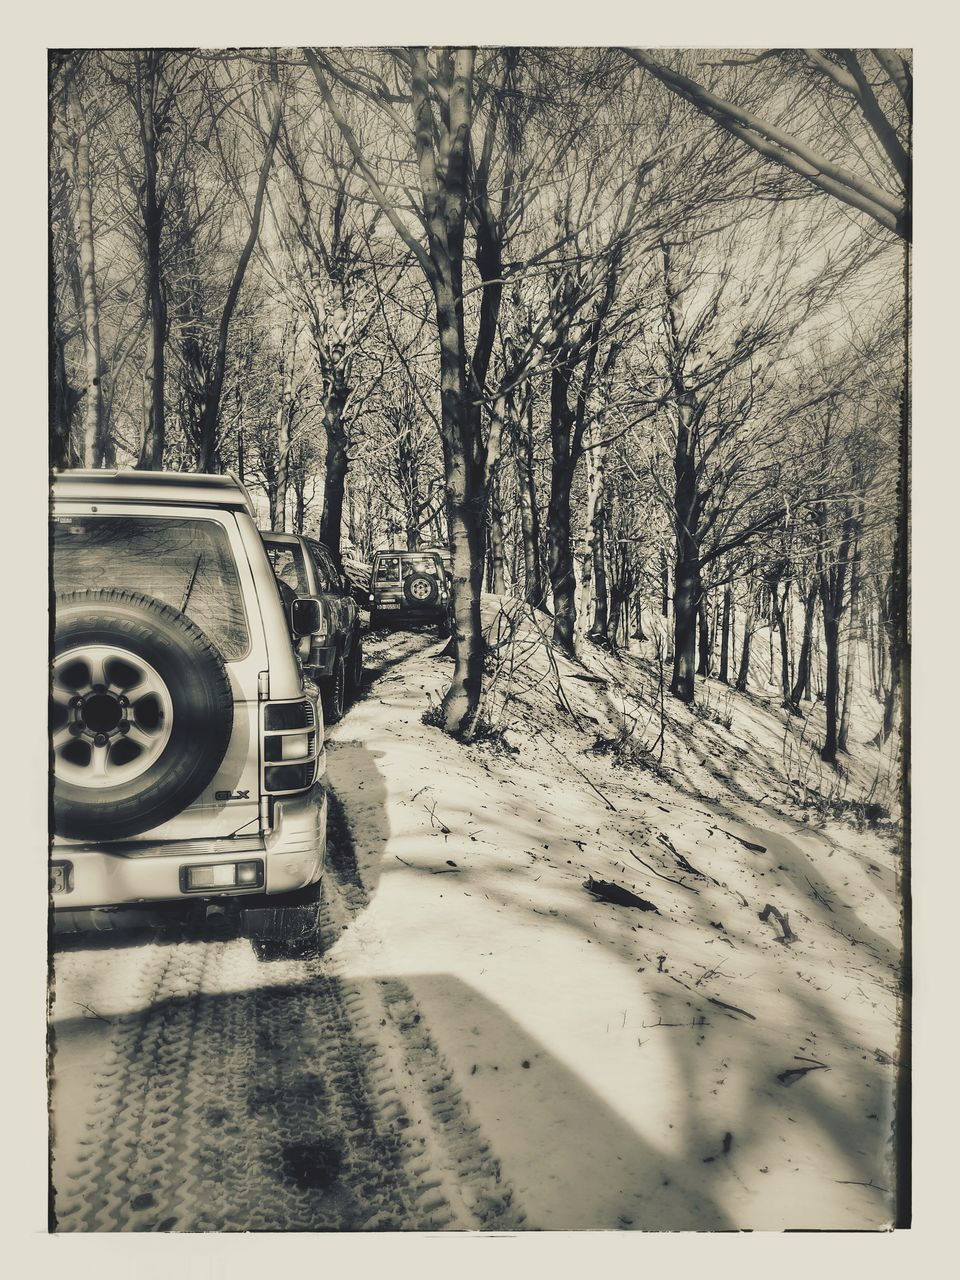 tree, land vehicle, car, transportation, bare tree, nature, no people, winter, branch, day, cold temperature, outdoors